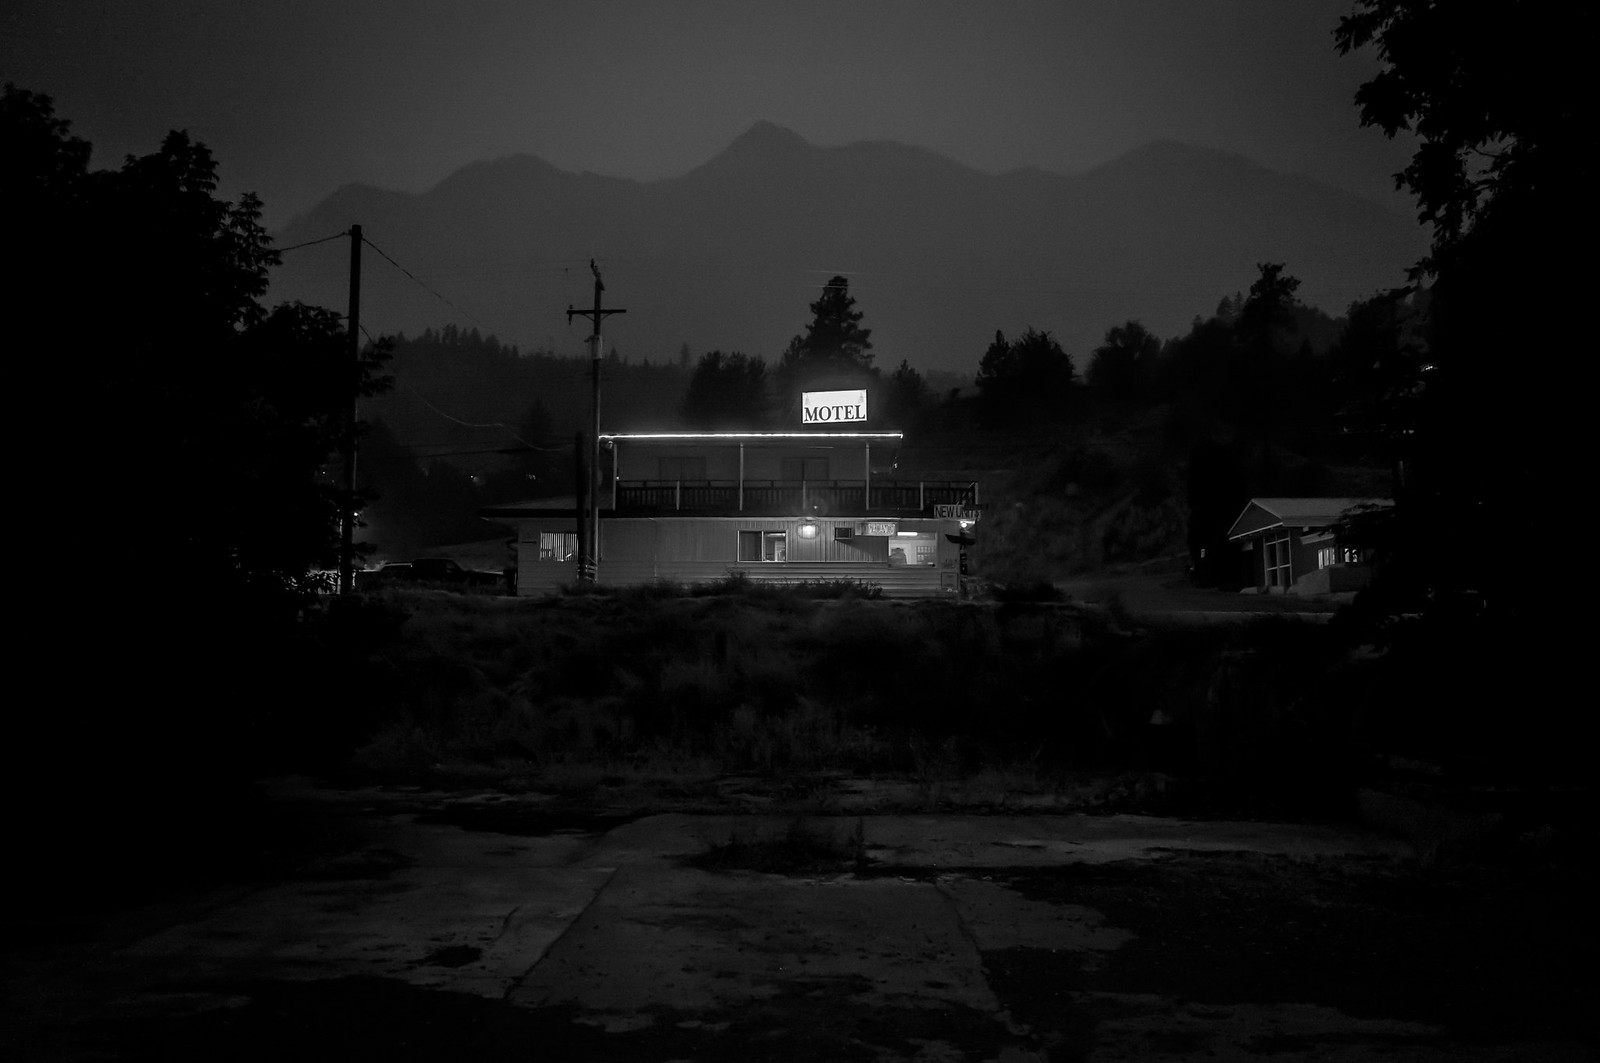 Motel | by lilyshot